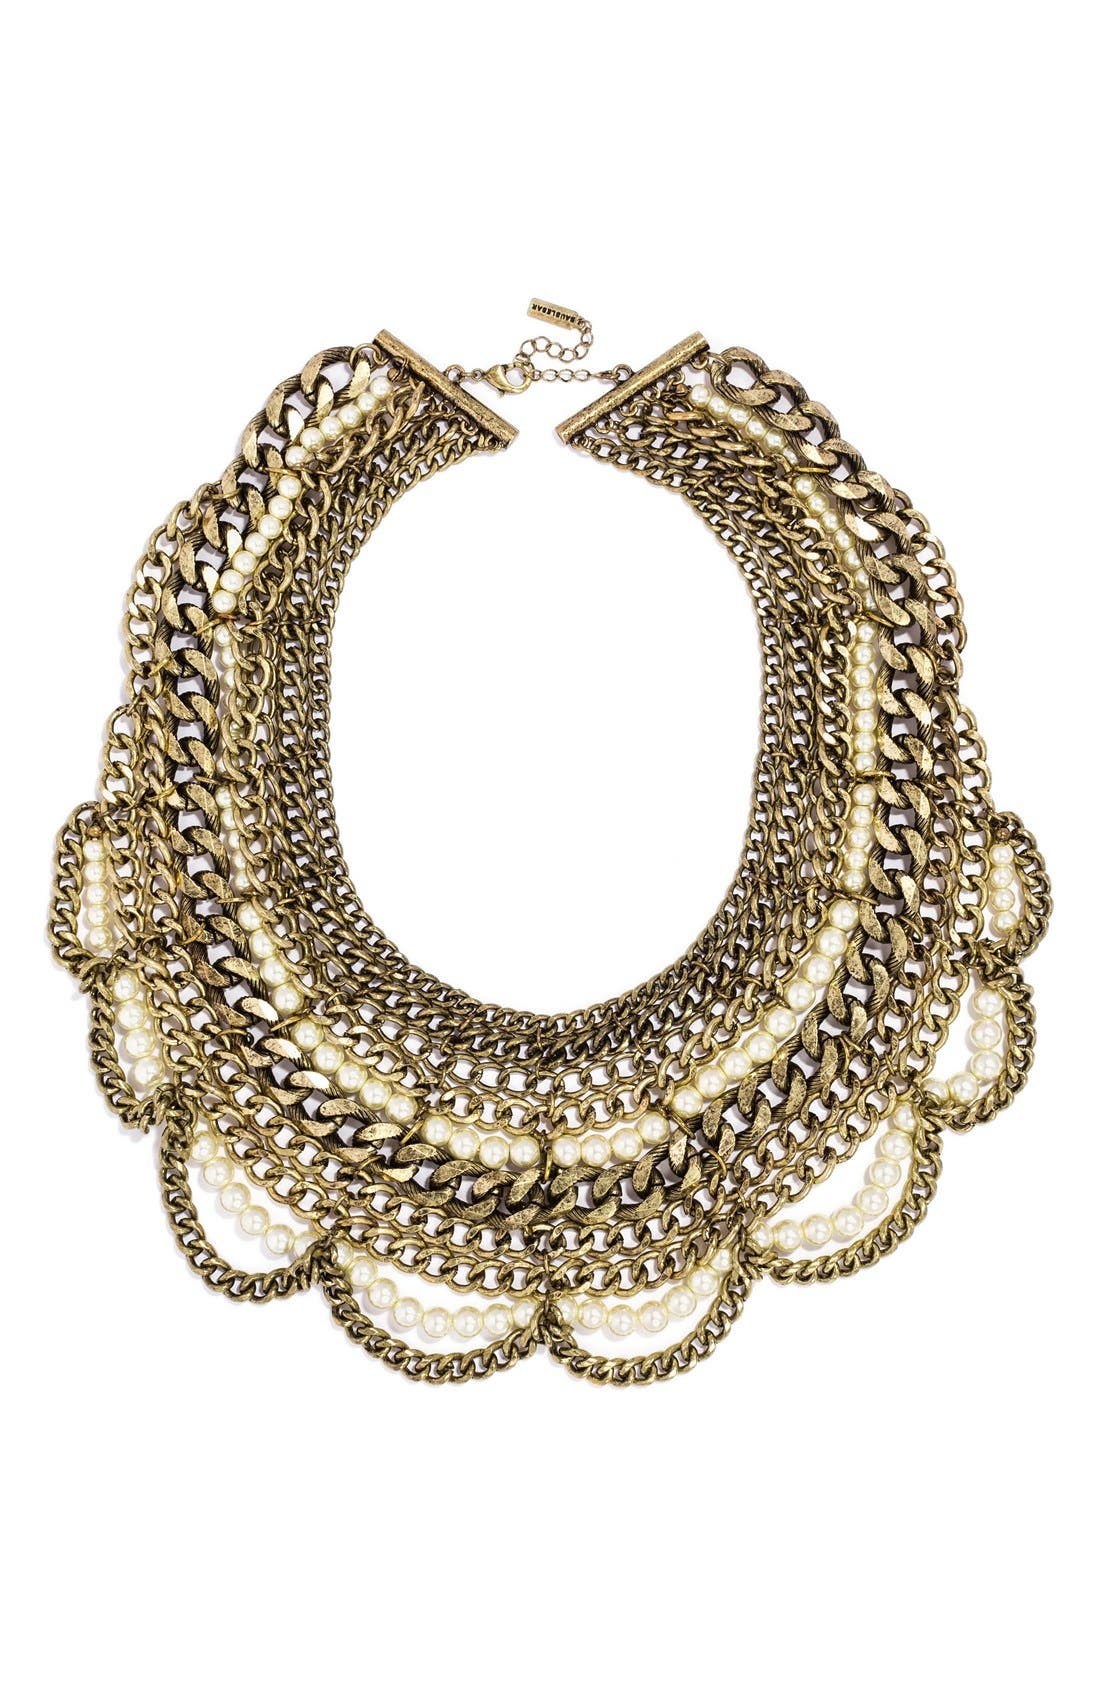 Main Image - BaubleBar 'Courtney 2.0' Necklace